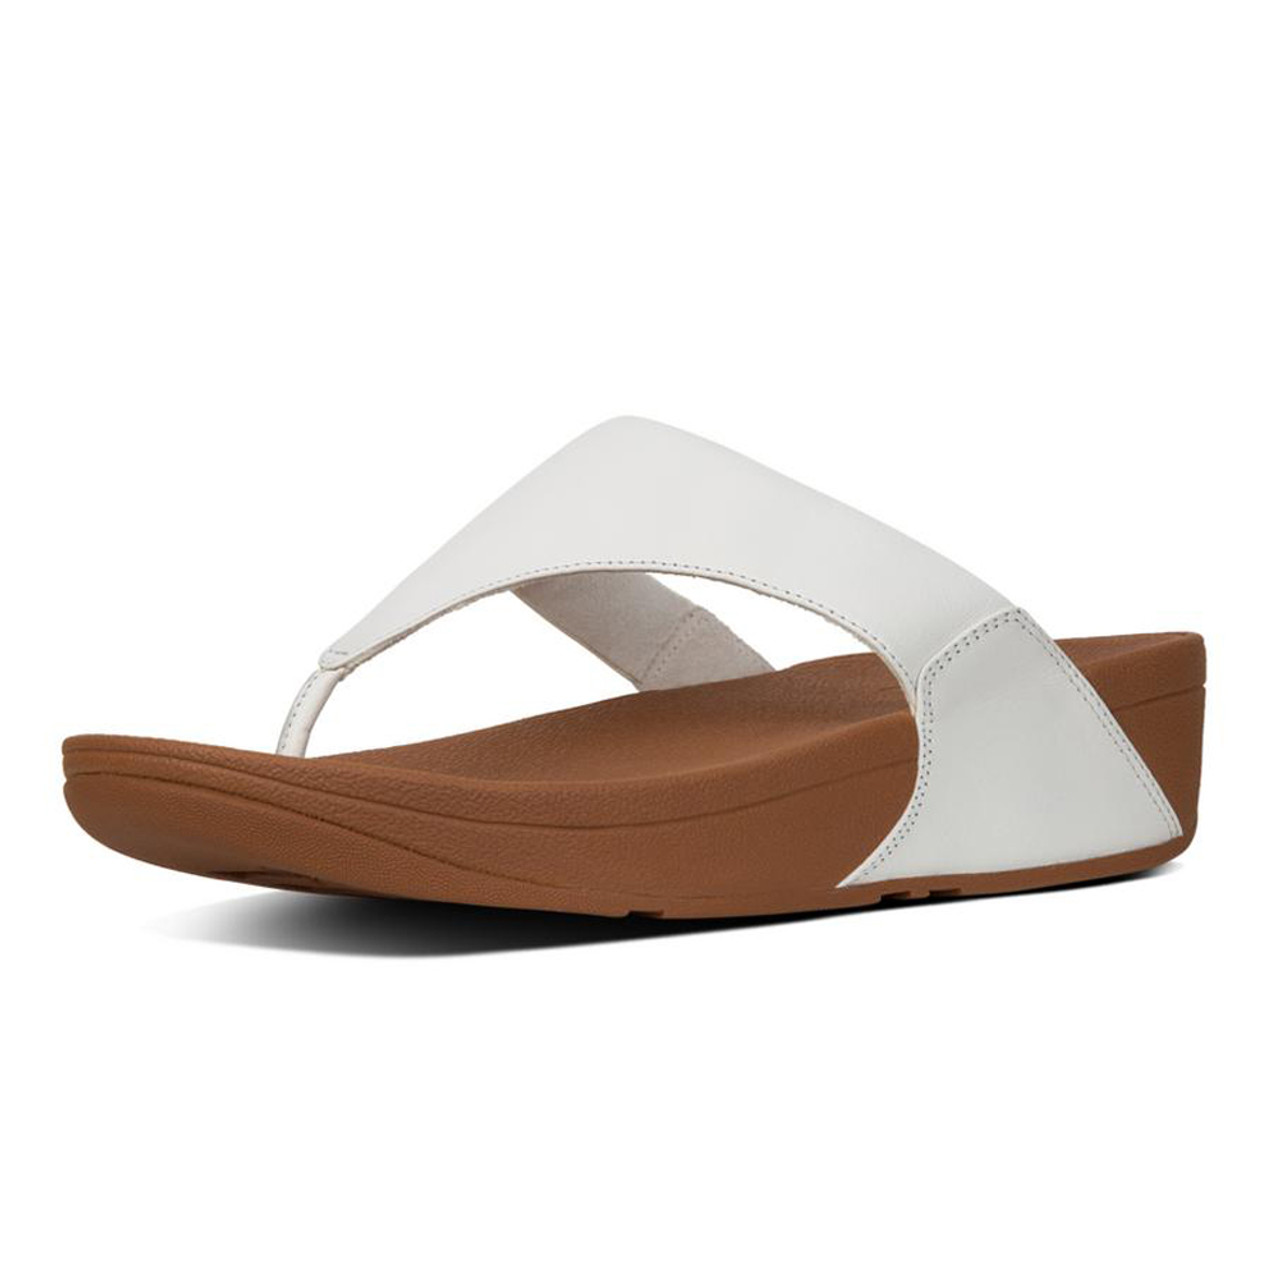 9b8551d2c1dfea Fitflop Women s Lulu Leather Thong Sandal Urban White - Shop now    Shoolu.com